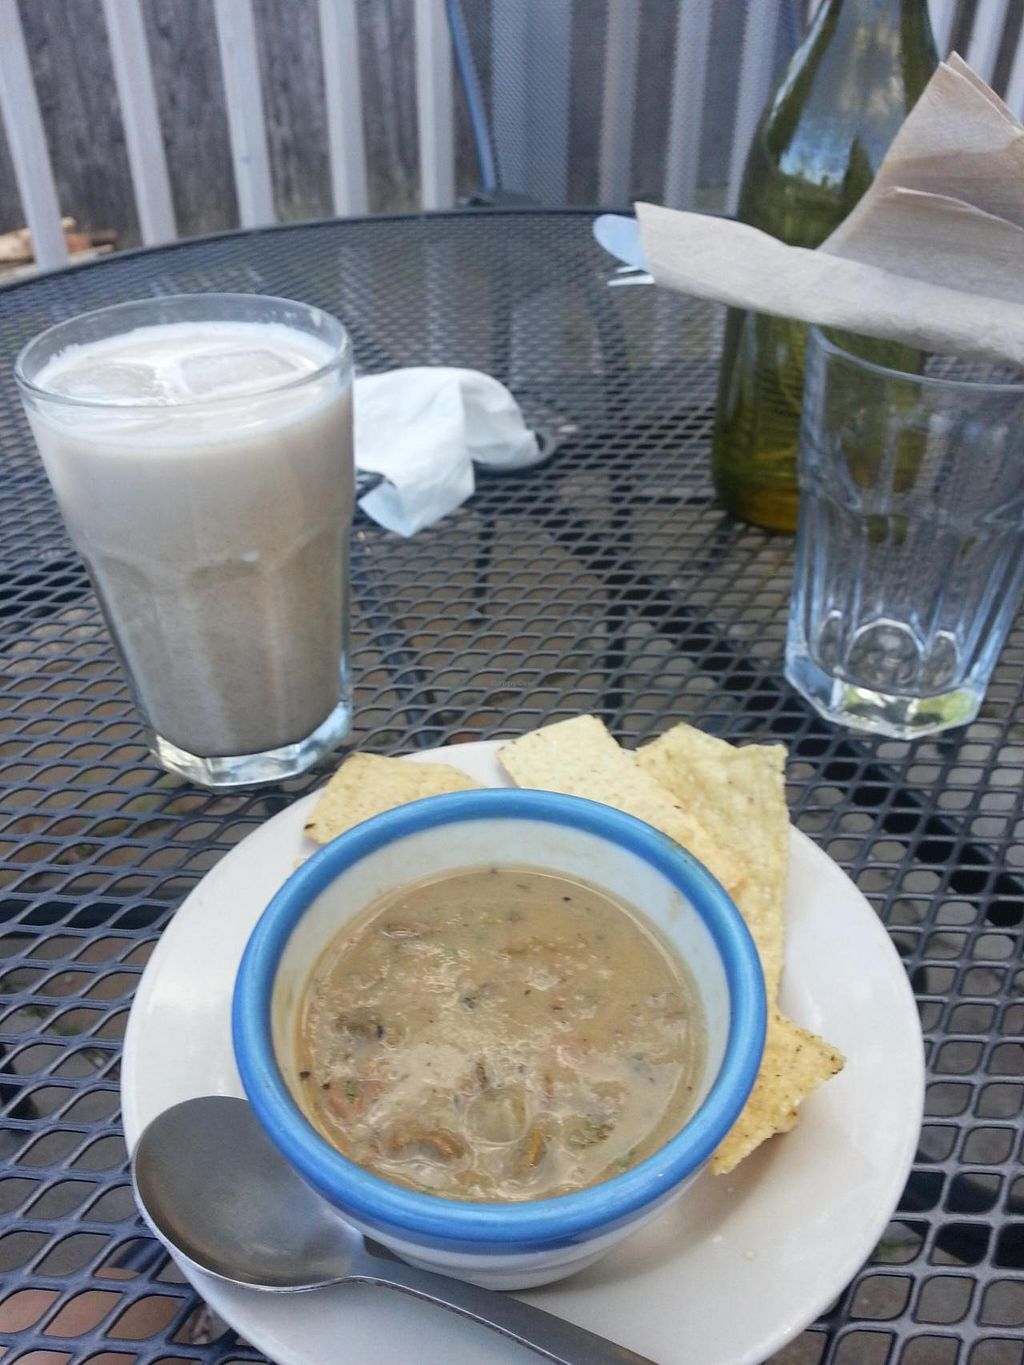 """Photo of Susty's Cafe  by <a href=""""/members/profile/HowardPacker"""">HowardPacker</a> <br/>Soup and Chai at available outdoor seating <br/> June 17, 2014  - <a href='/contact/abuse/image/3167/72178'>Report</a>"""